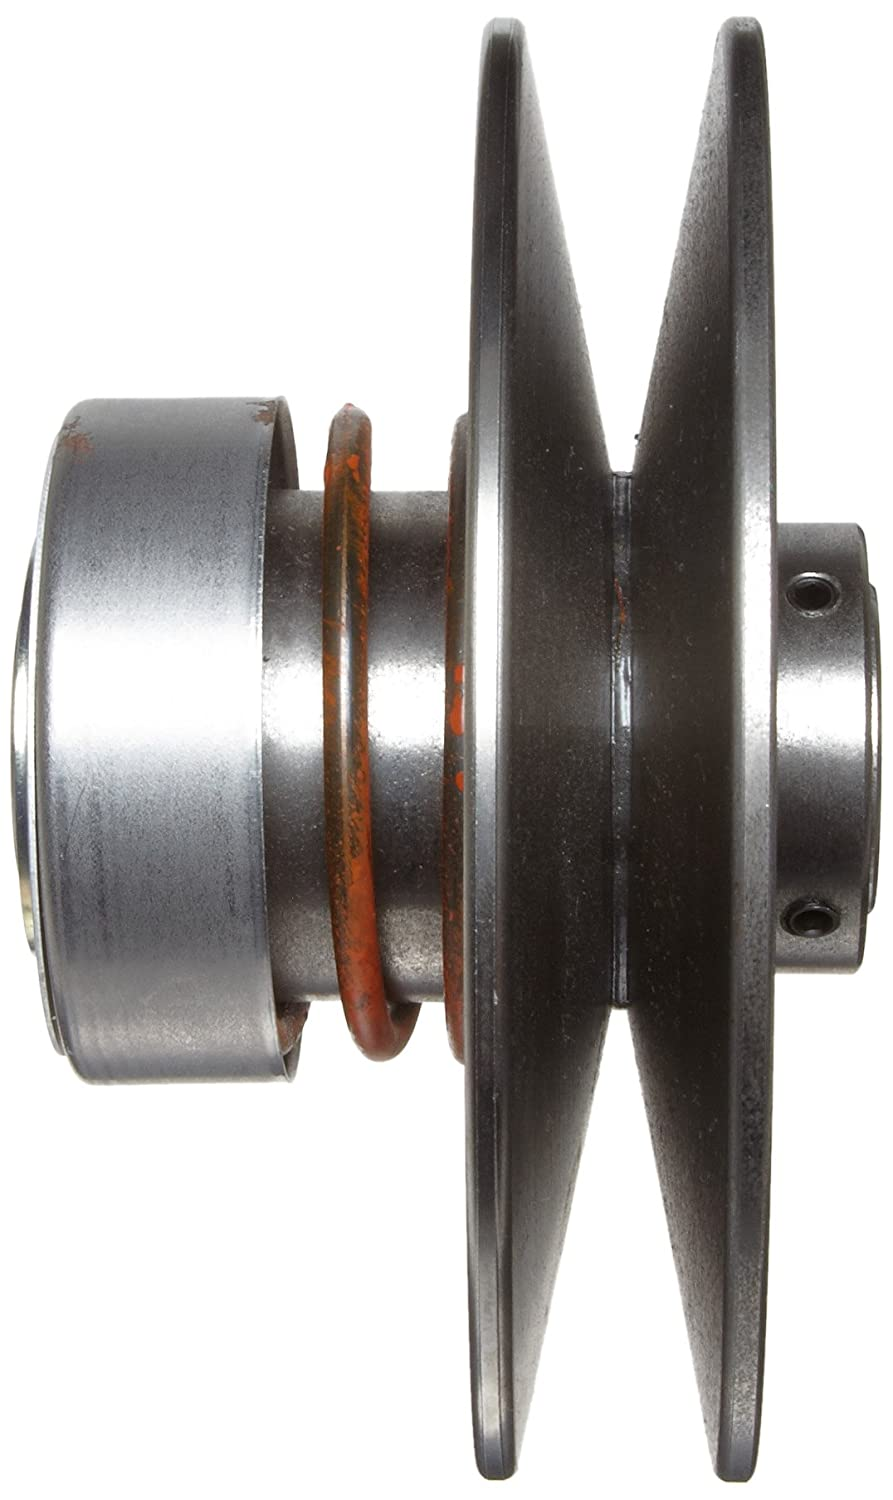 Lovejoy 11401 Hexadrive Variable Speed Pulley 3.56 Overall Length 3//4 Bore 6 OD 3.56 Overall Length 68514420760 6 OD 3//4 Bore 36 inch-pounds Torque Capacity